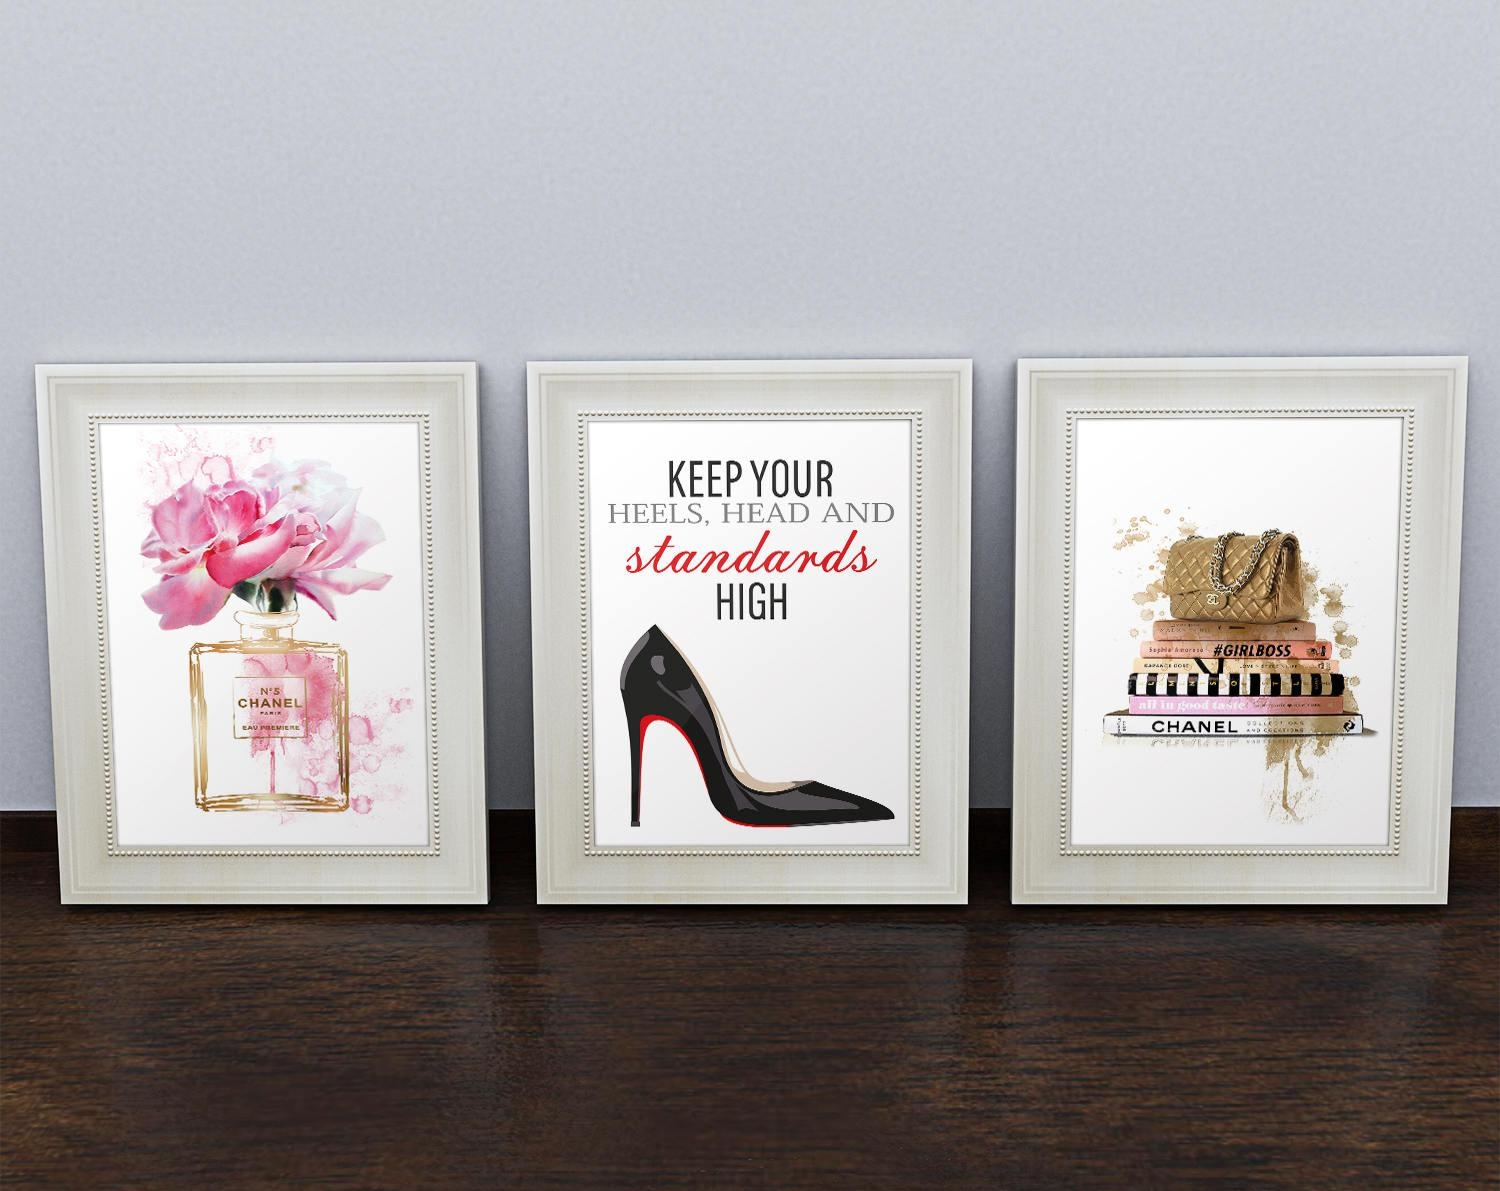 3 Fashion Posters Coco Chanel. Chanel Perfume Chanel Quote inside Coco Chanel Quotes Framed Wall Art